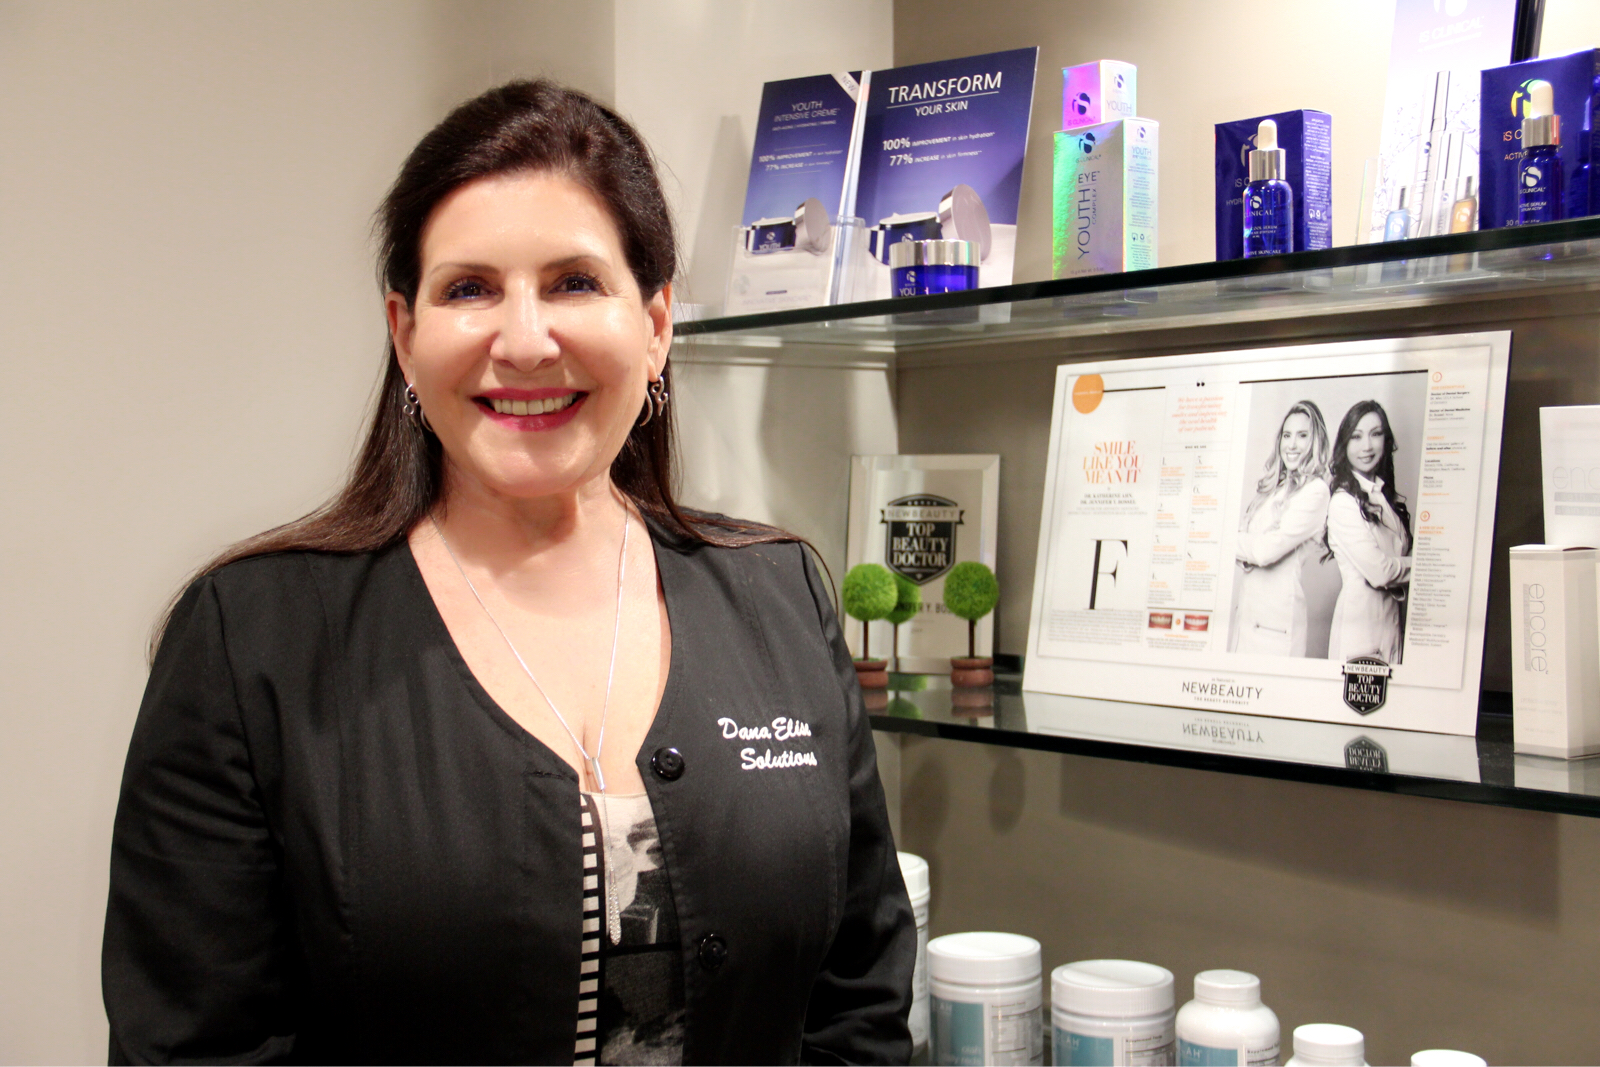 Electrolysis Hair Removal With Dana Elise Solutions | LATF USA